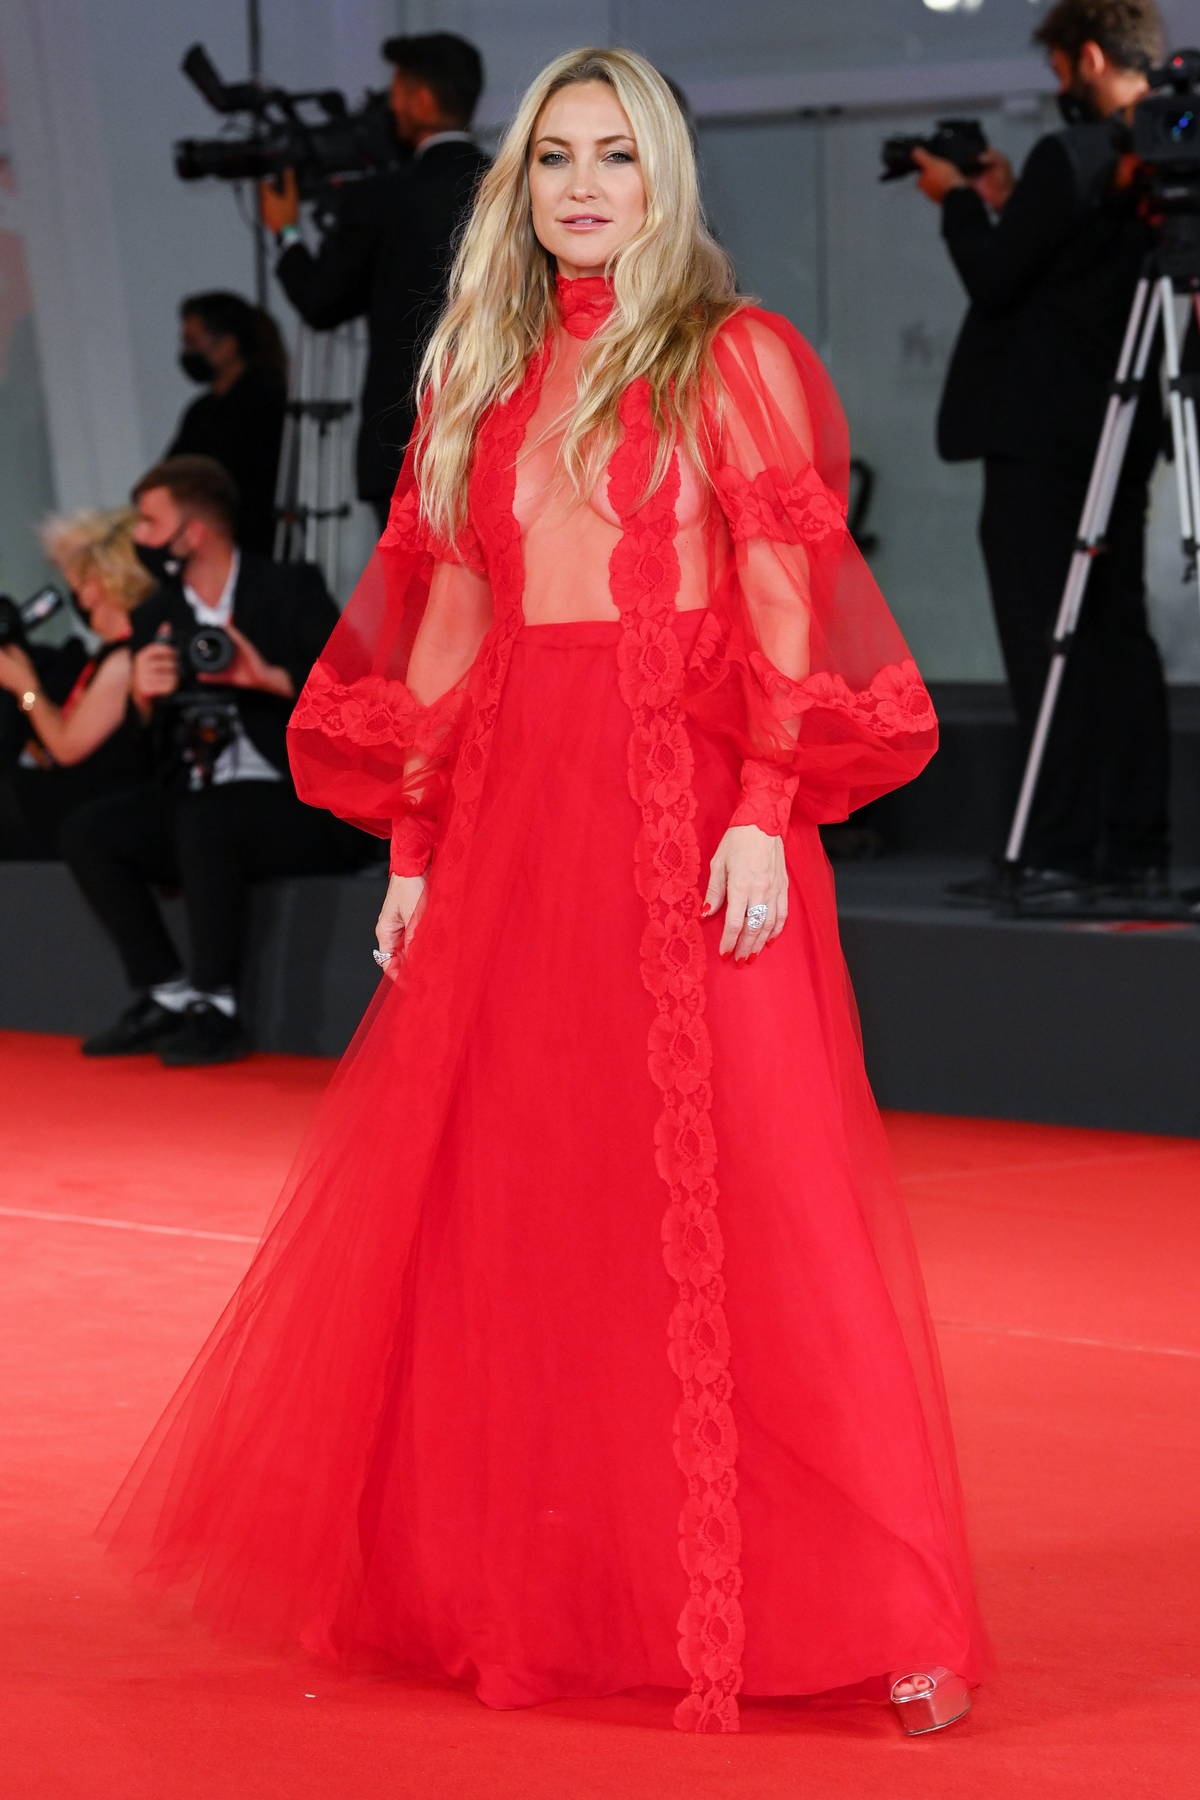 Kate Hudson attends the Premiere of 'Mona Lisa And The Blood Moon' during the 78th Venice International Film Festival in Venice, Italy